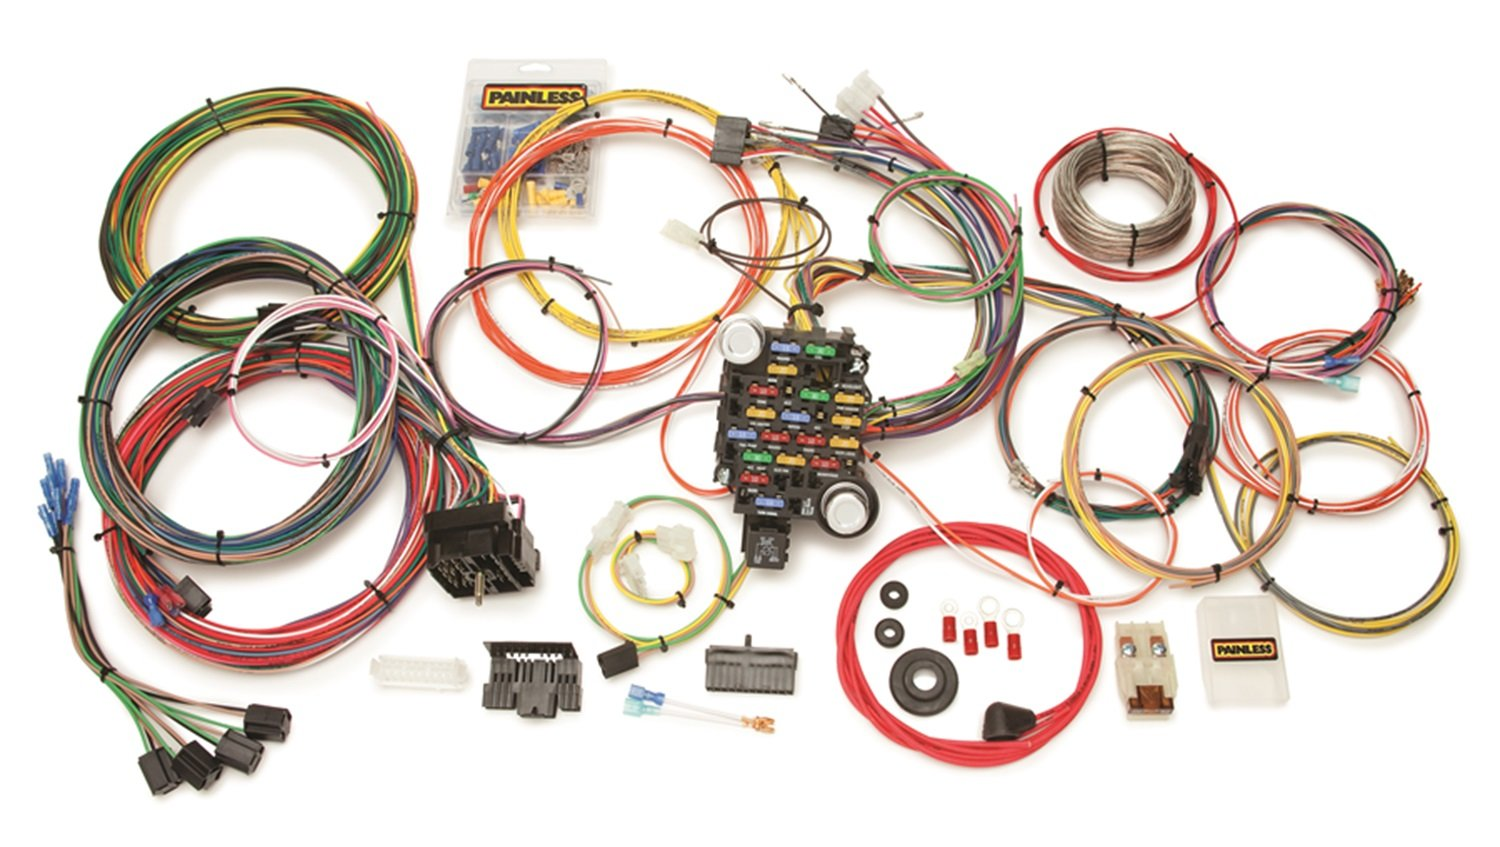 18 Circuit Painless Wiring Harness Library 10102 Instructions Amazoncom 10205 System Automotive